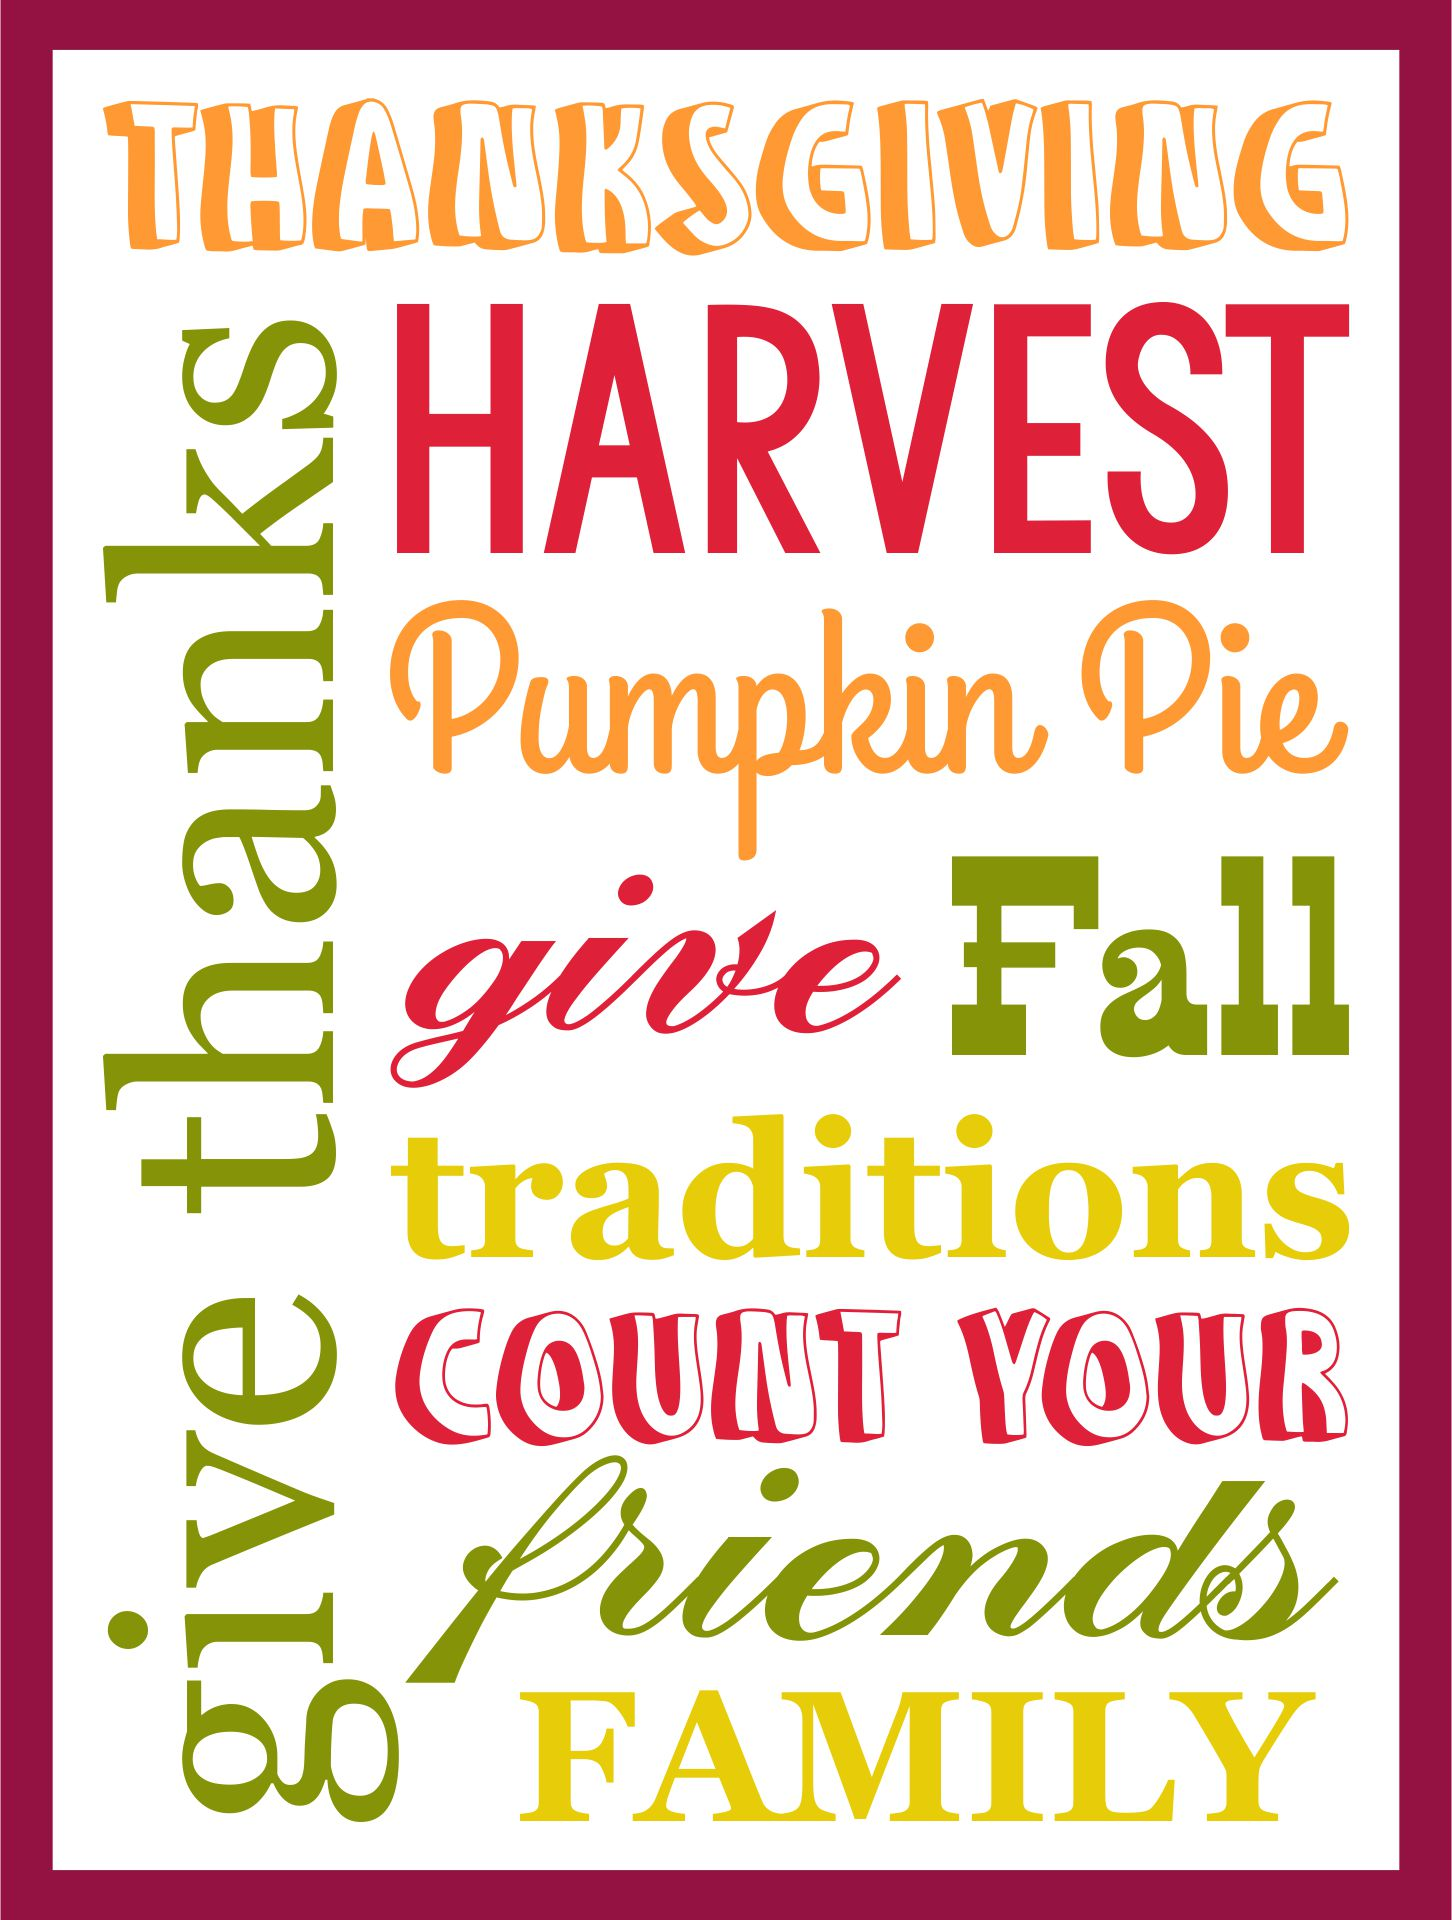 Printable Thanksgiving Subway Art